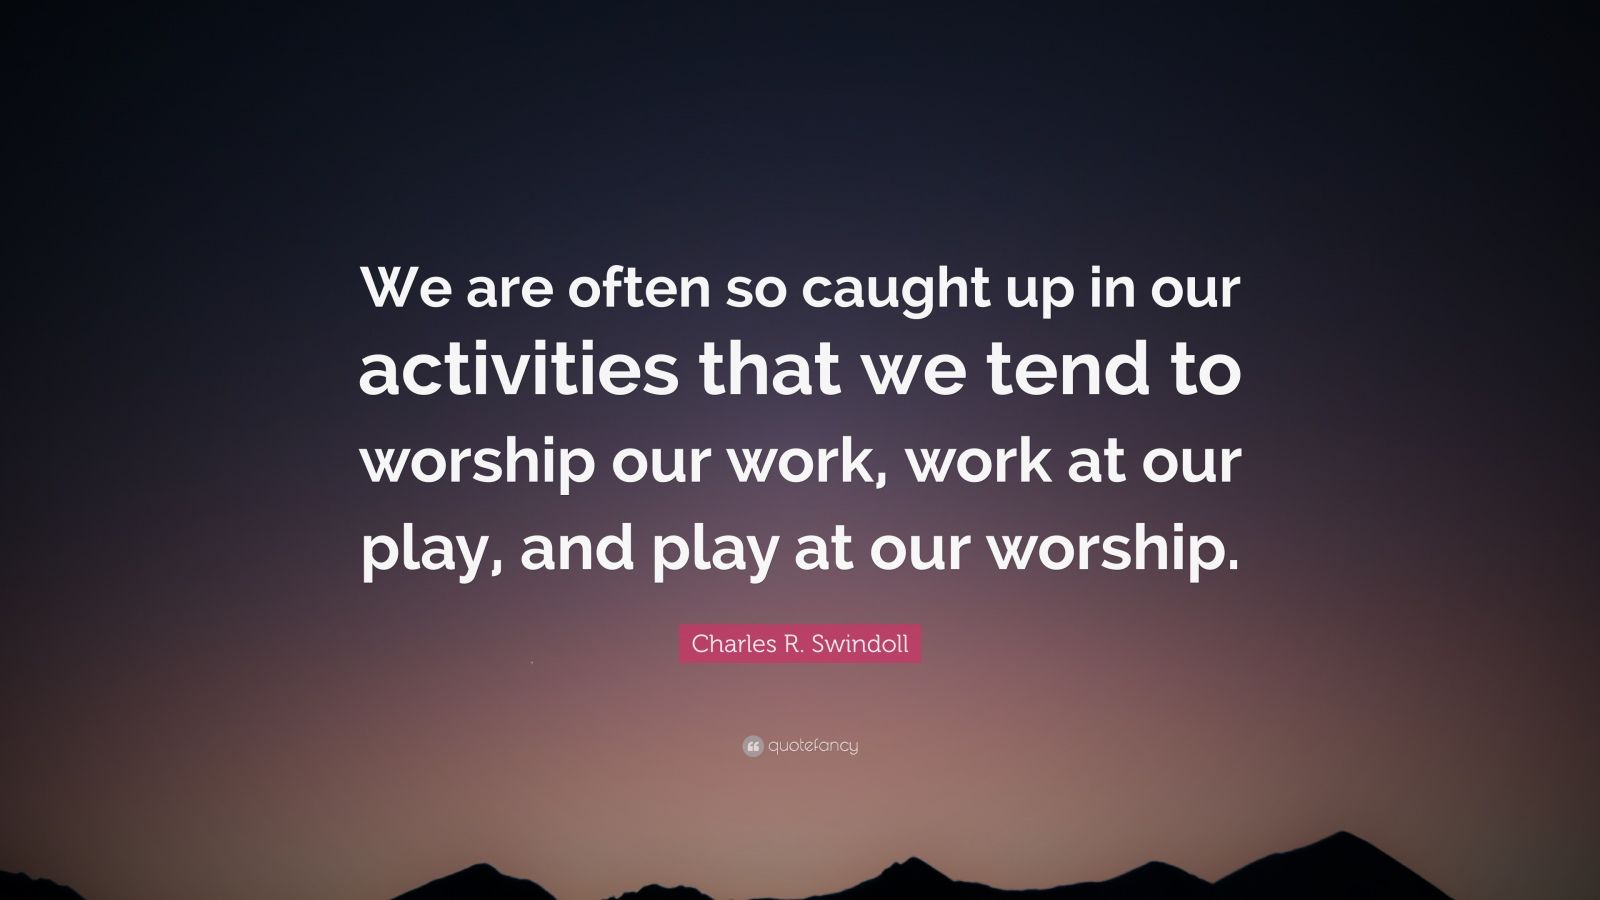 """Charles R. Swindoll Quote: """"We are often so caught up in our activities that we tend to worship our work, work at our play, and play at our worship."""""""